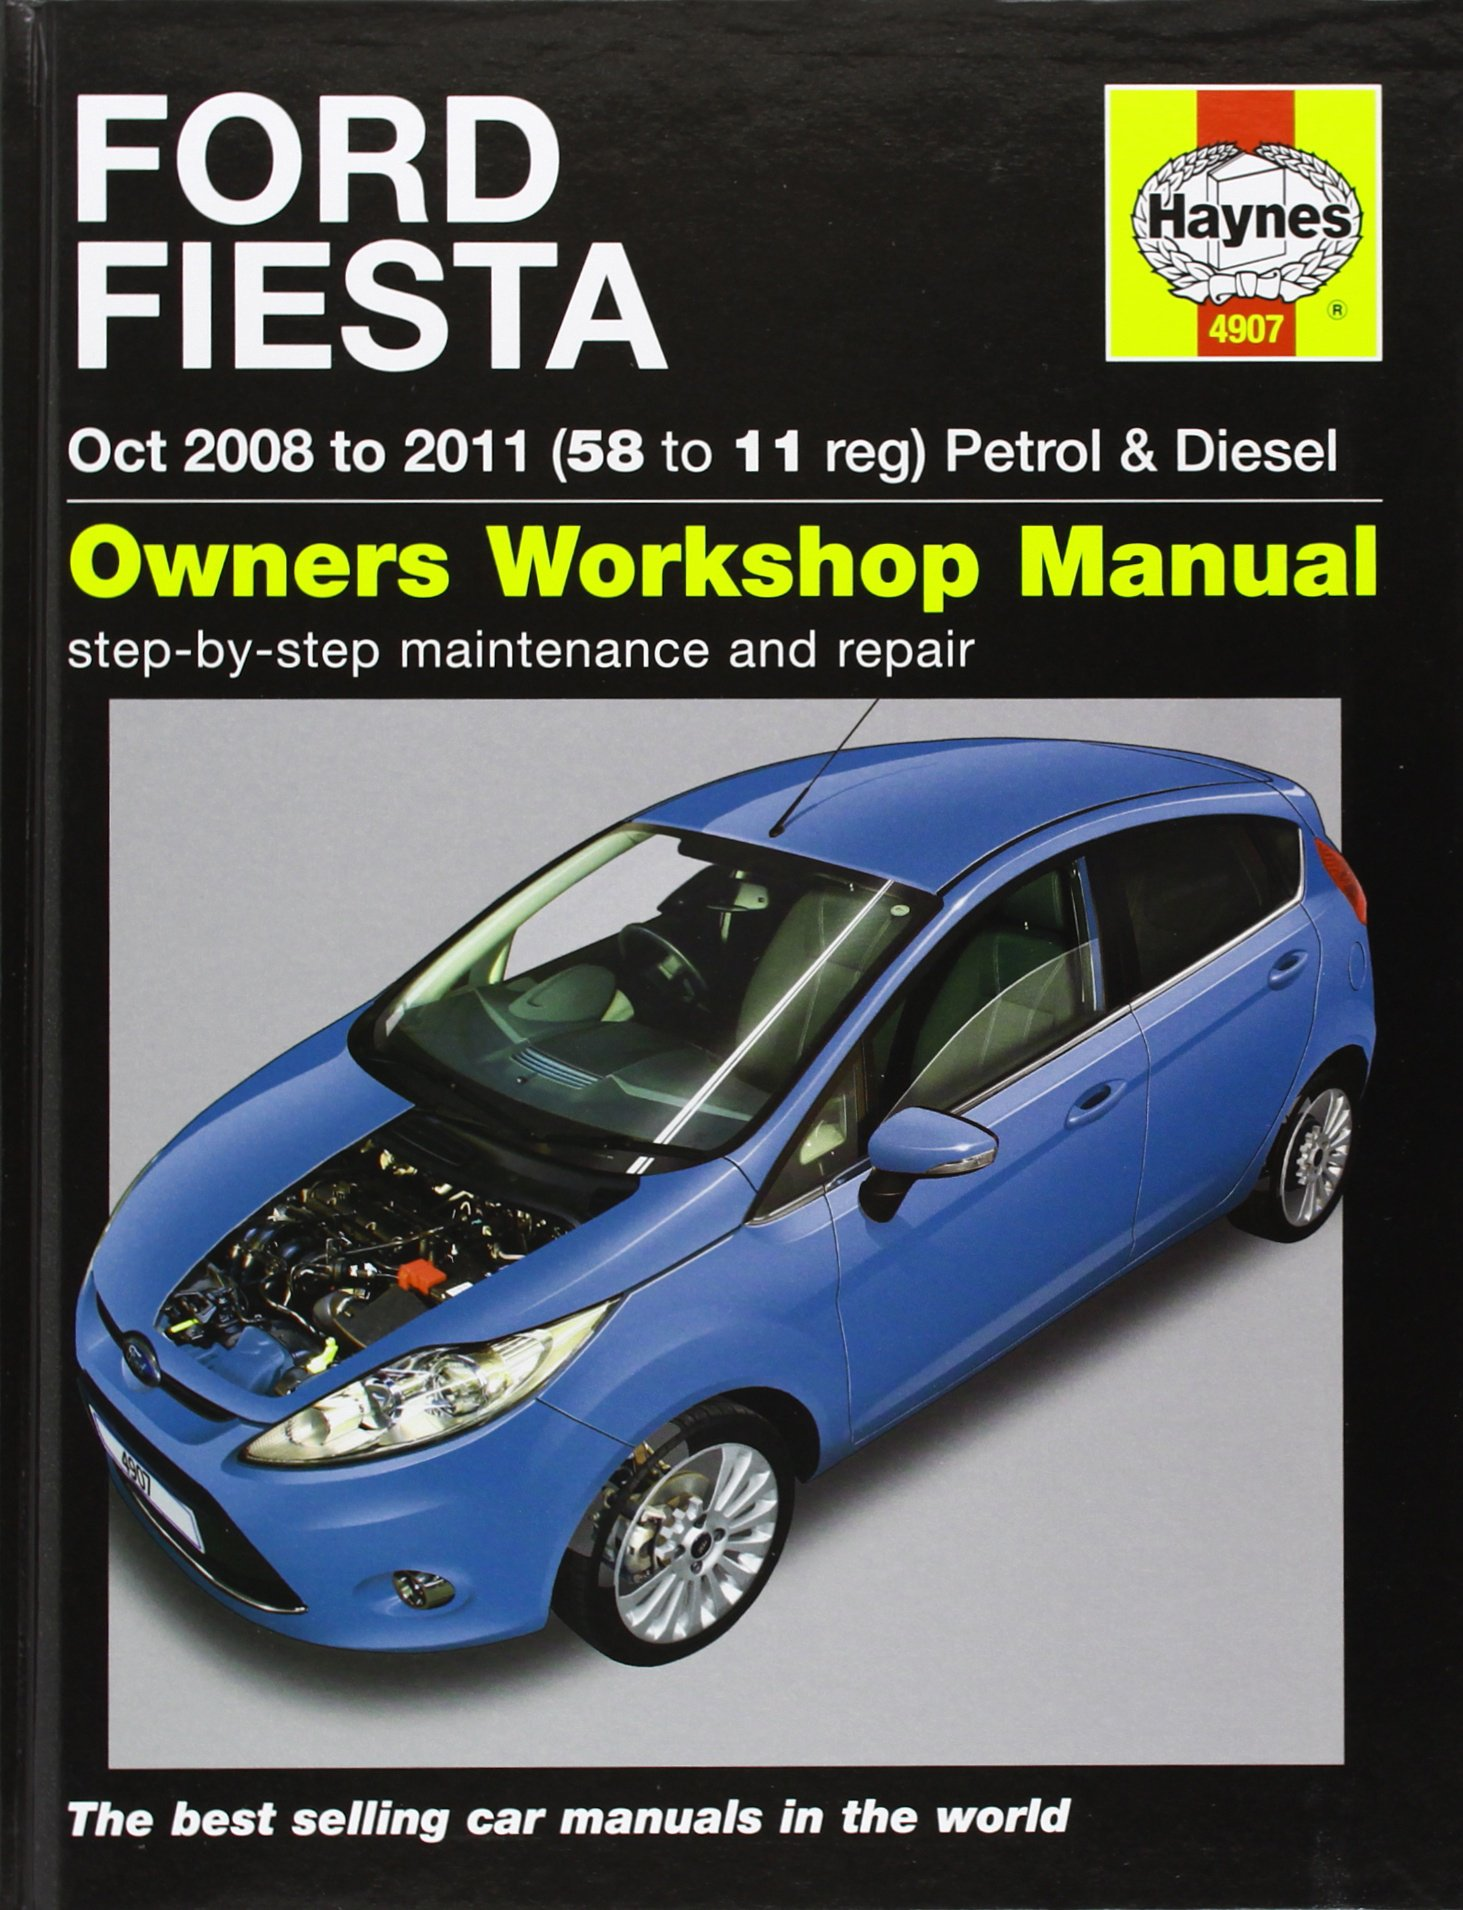 ford fiesta petrol diesel service and repair manual 2008 to 2011 rh amazon co uk Ford Fiesta Owner's Manual 2012 Ford Fiesta Oil Reset